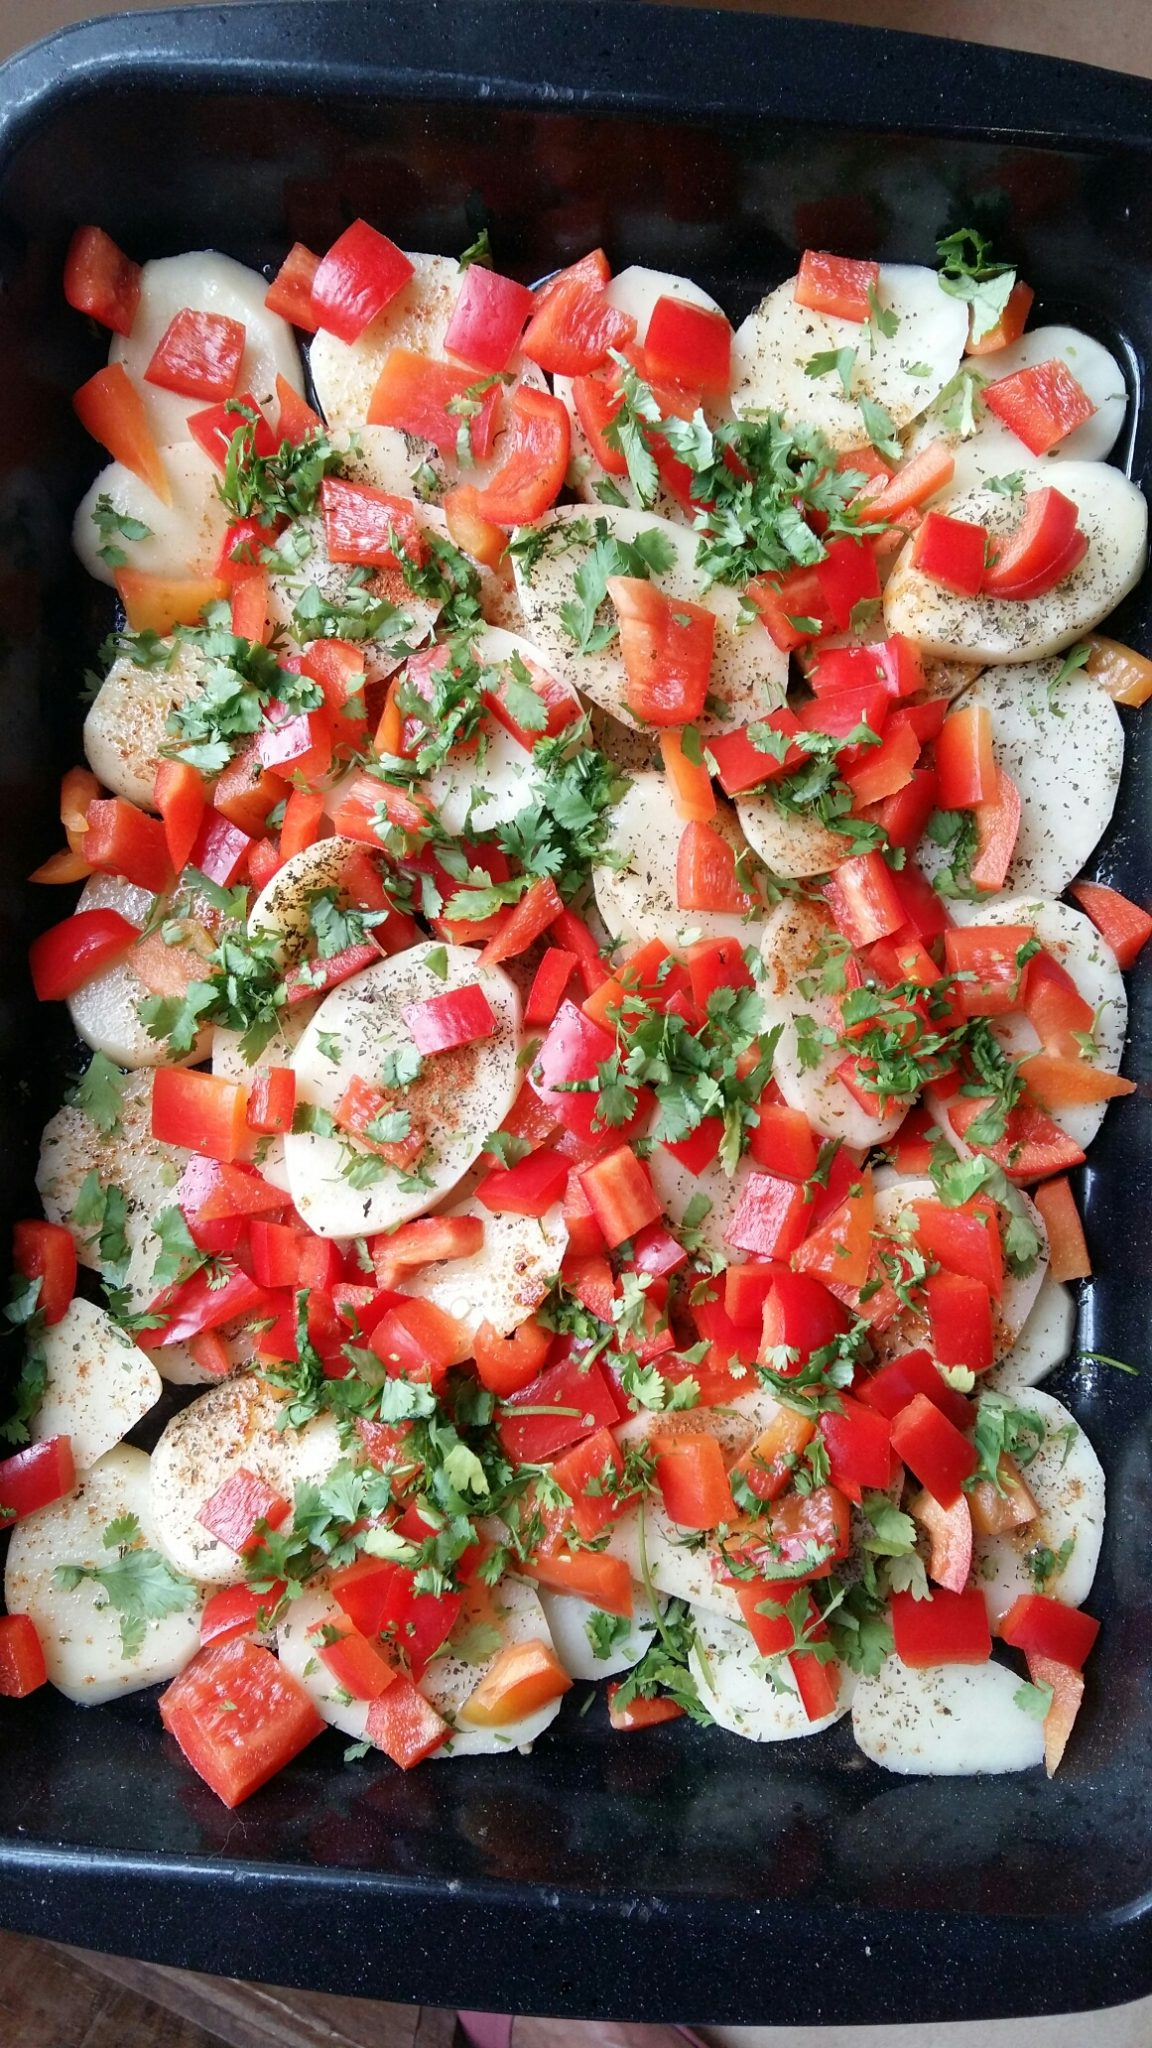 Scatter over chopped sweet red pepper, chopped fresh coriander and Italian parsley